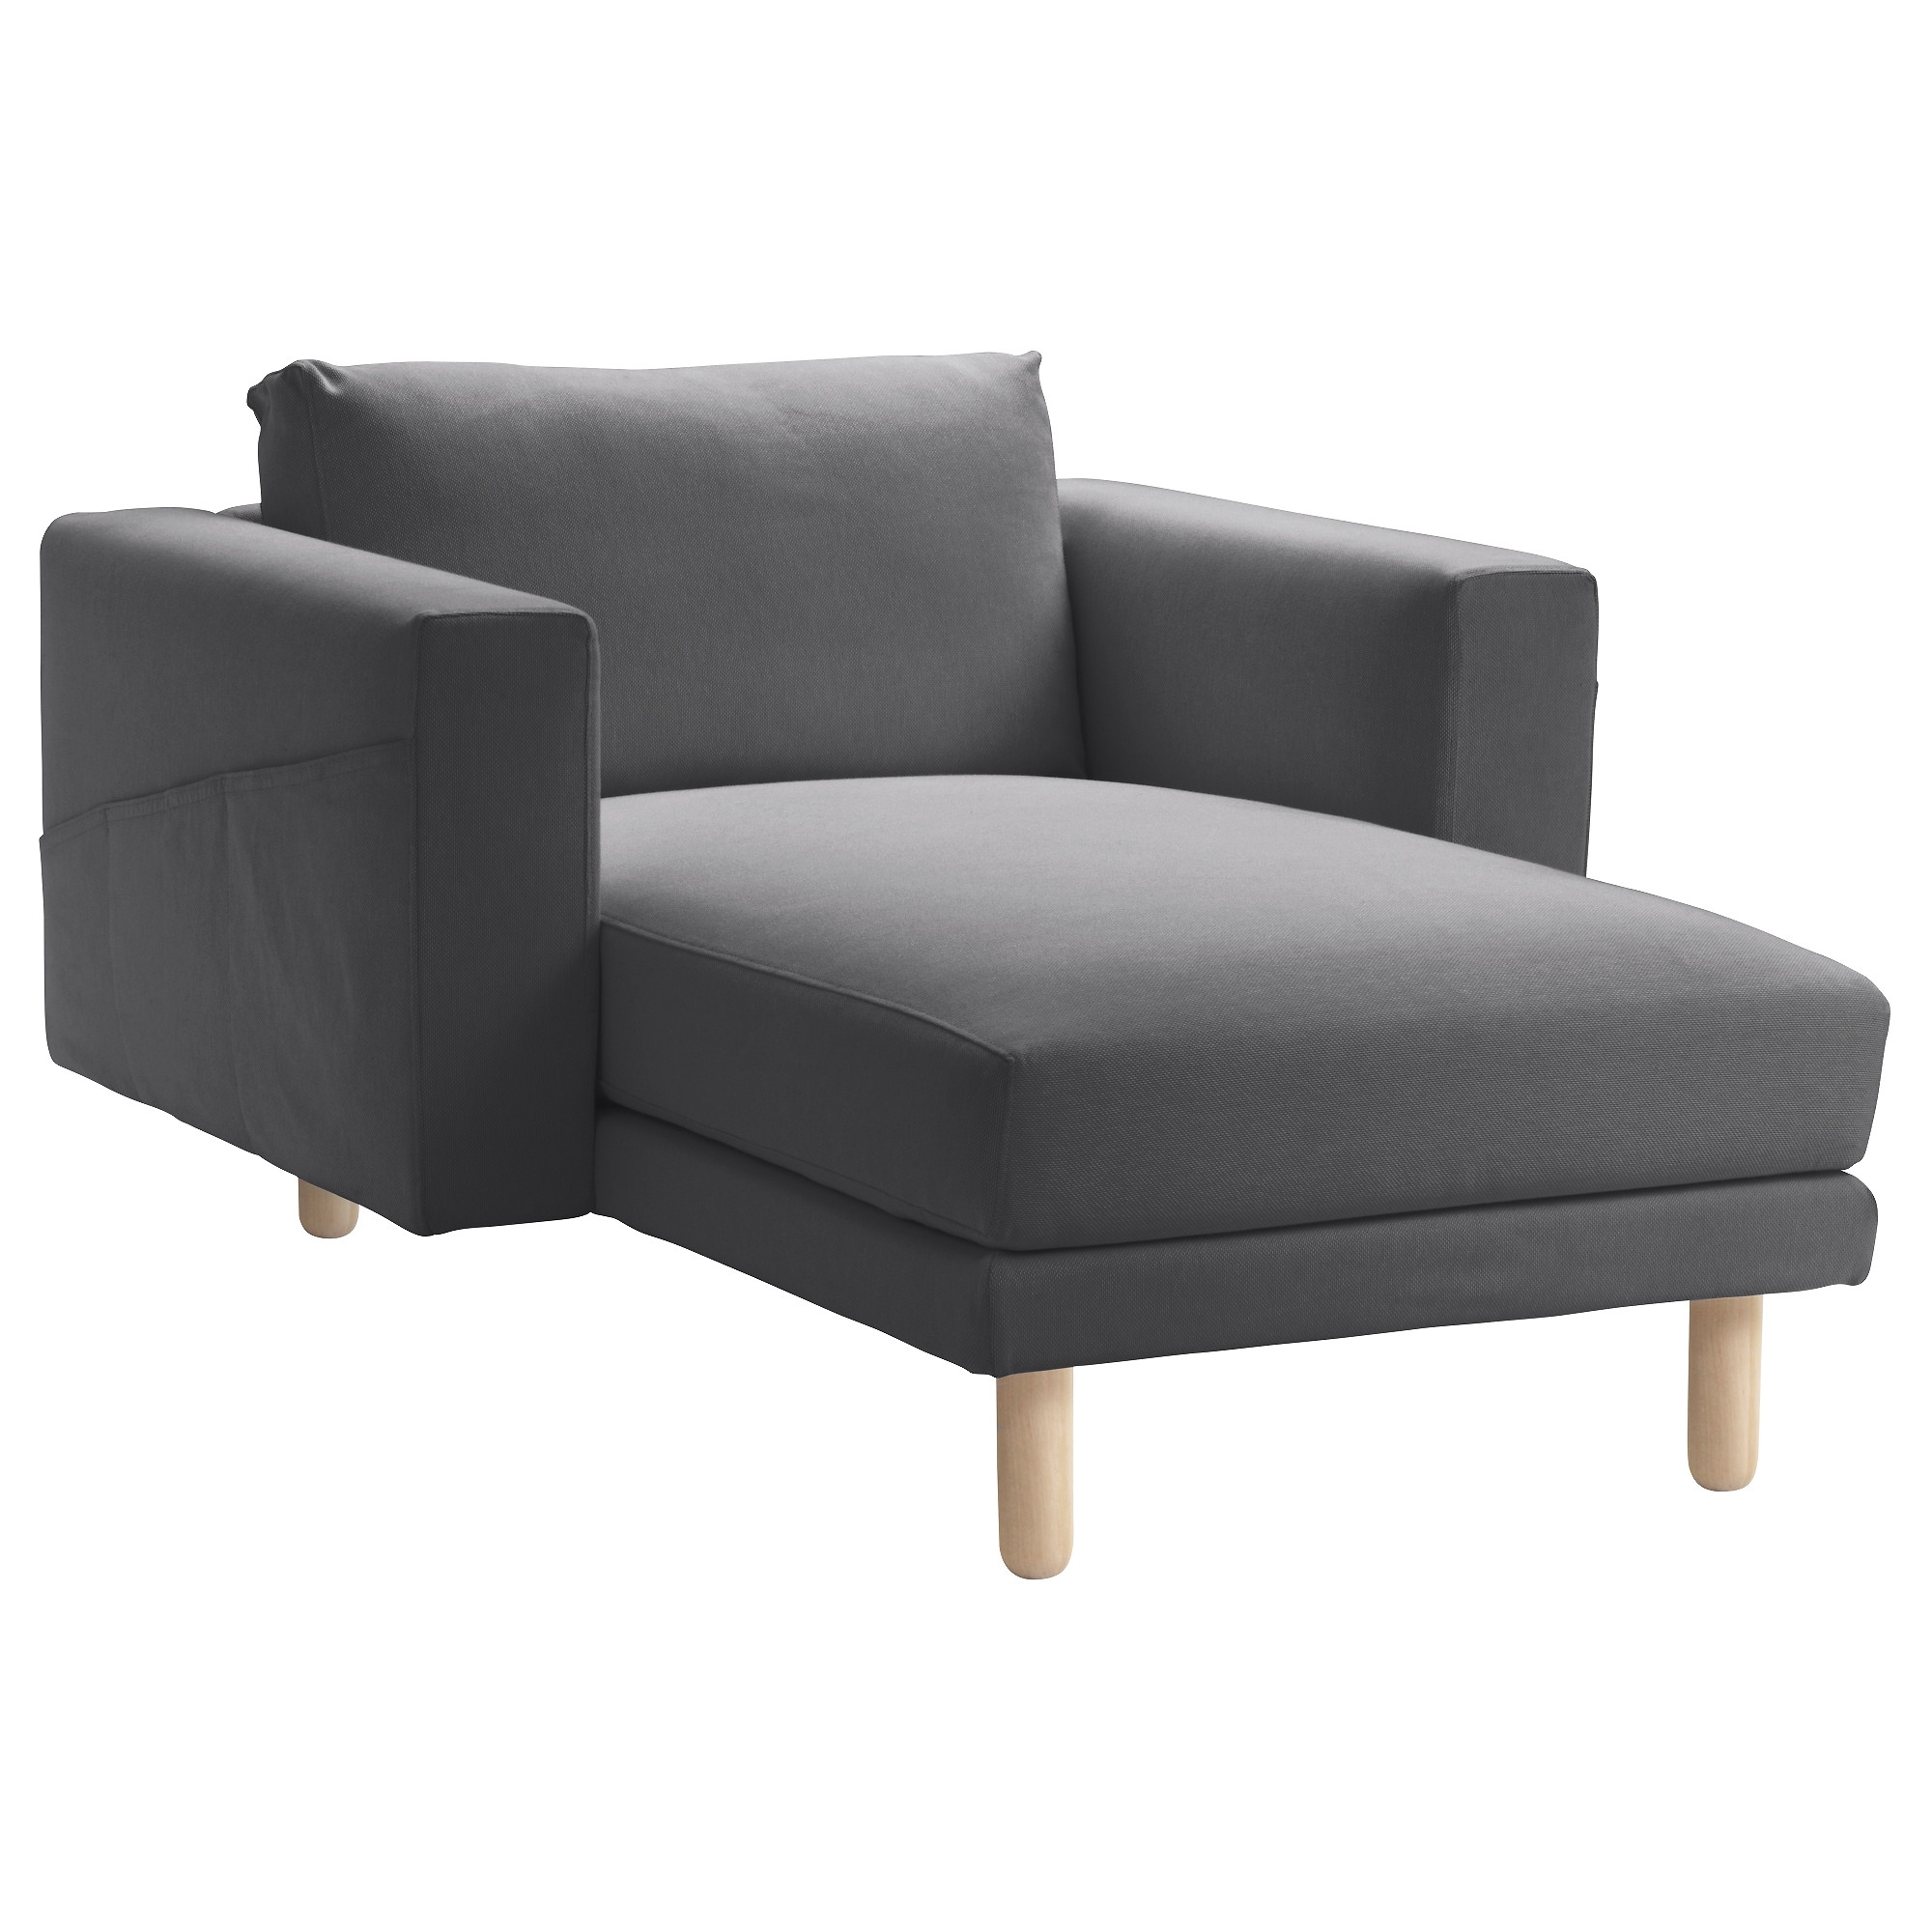 Norsborg Chaise Longue Finnsta Dark Grey/birch – Ikea Within Latest Ikea Chaise Longues (View 13 of 15)